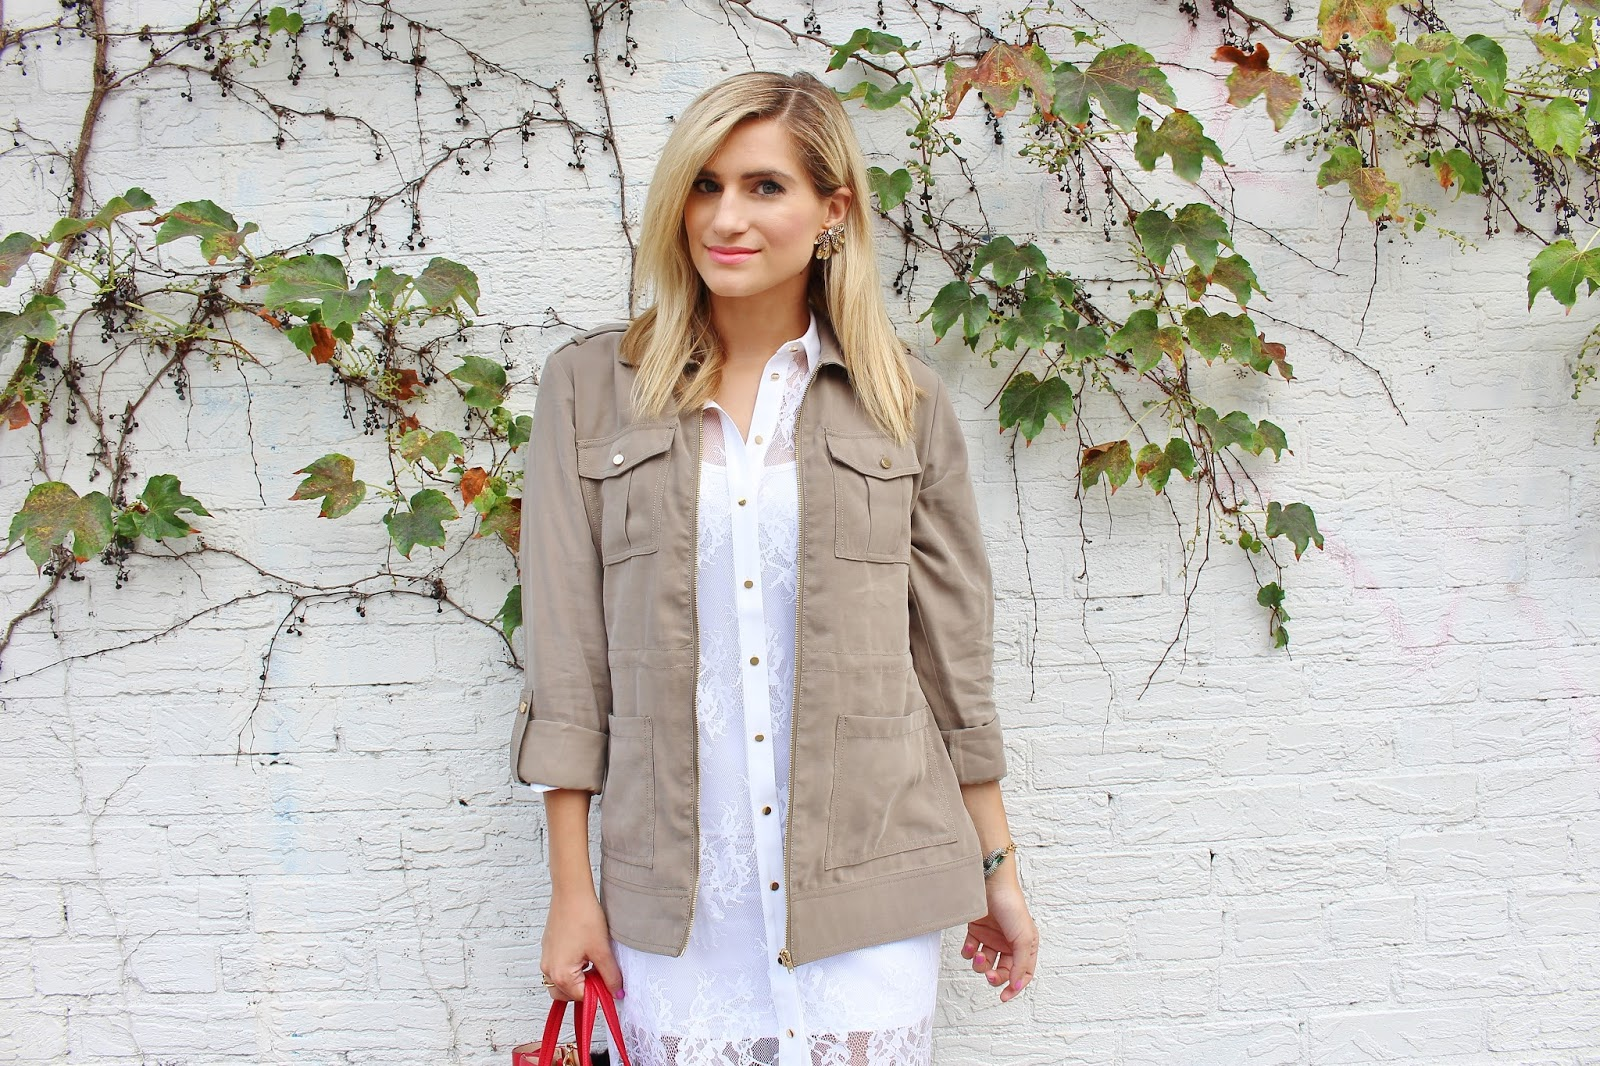 bijuleni- GUESS Military jacket and lace button down dress